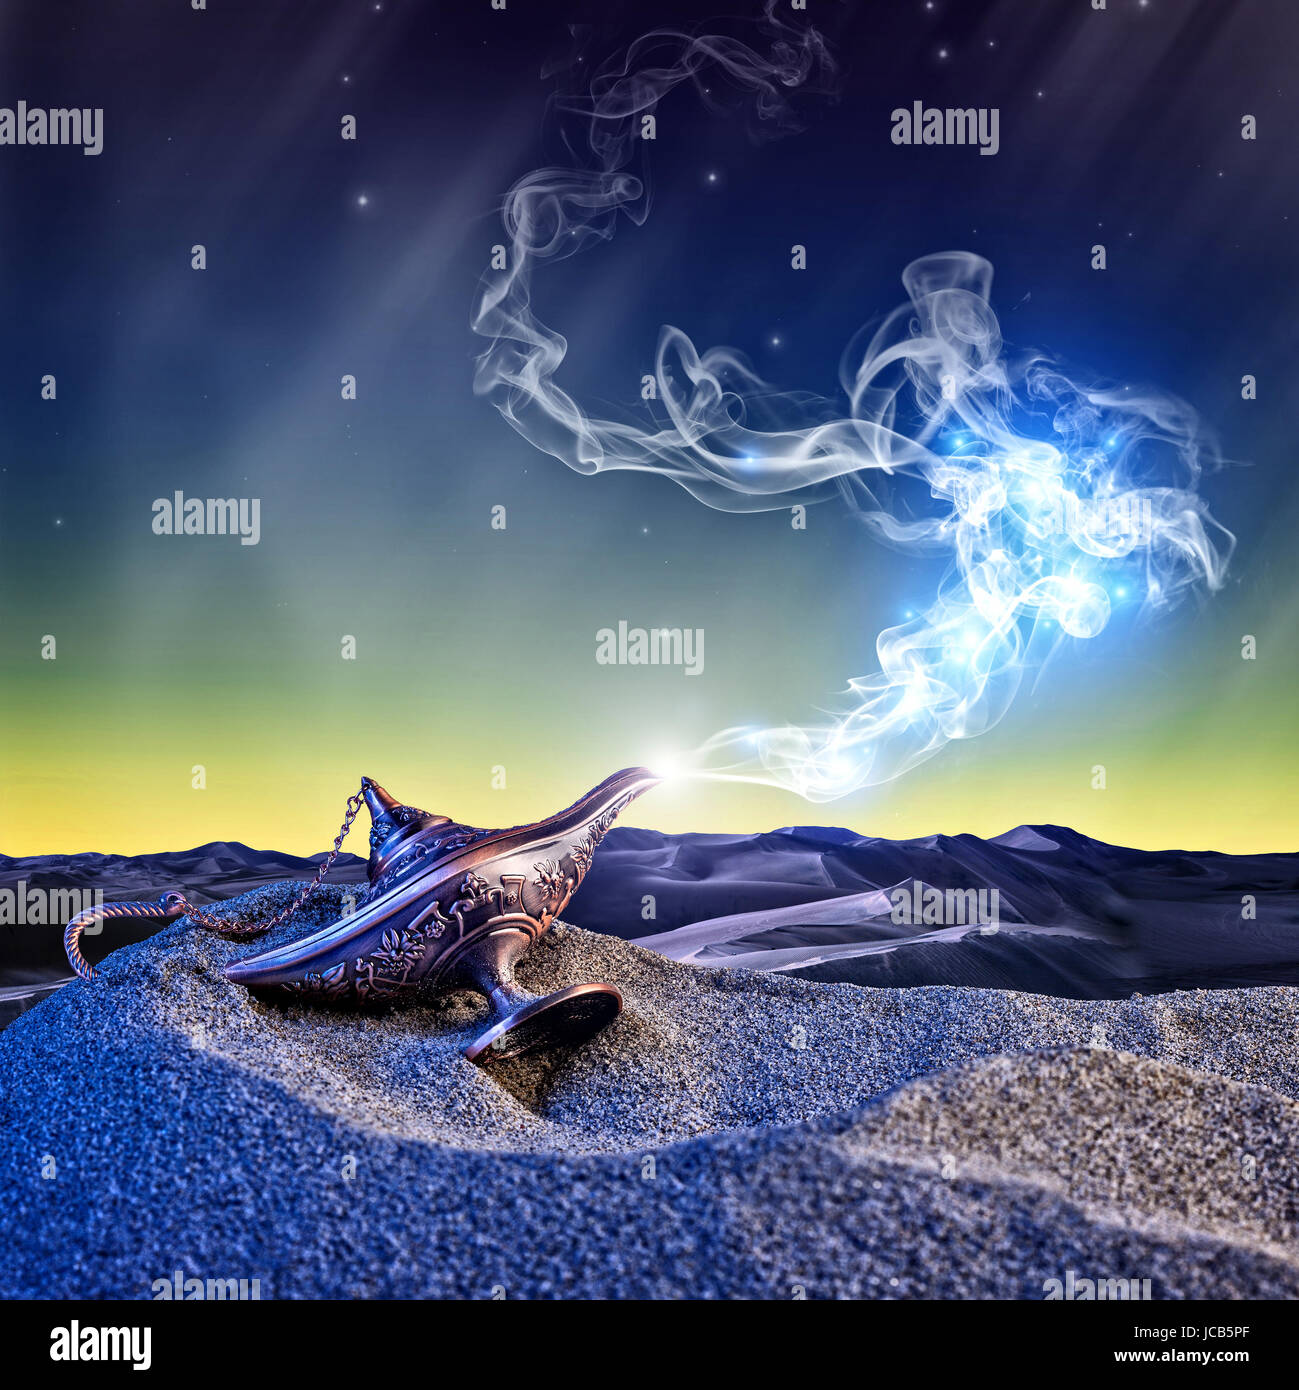 Musical Aladdin Fliegender Teppich Classic Aladdin Magic Lamp In The Desert Night Scene Stock